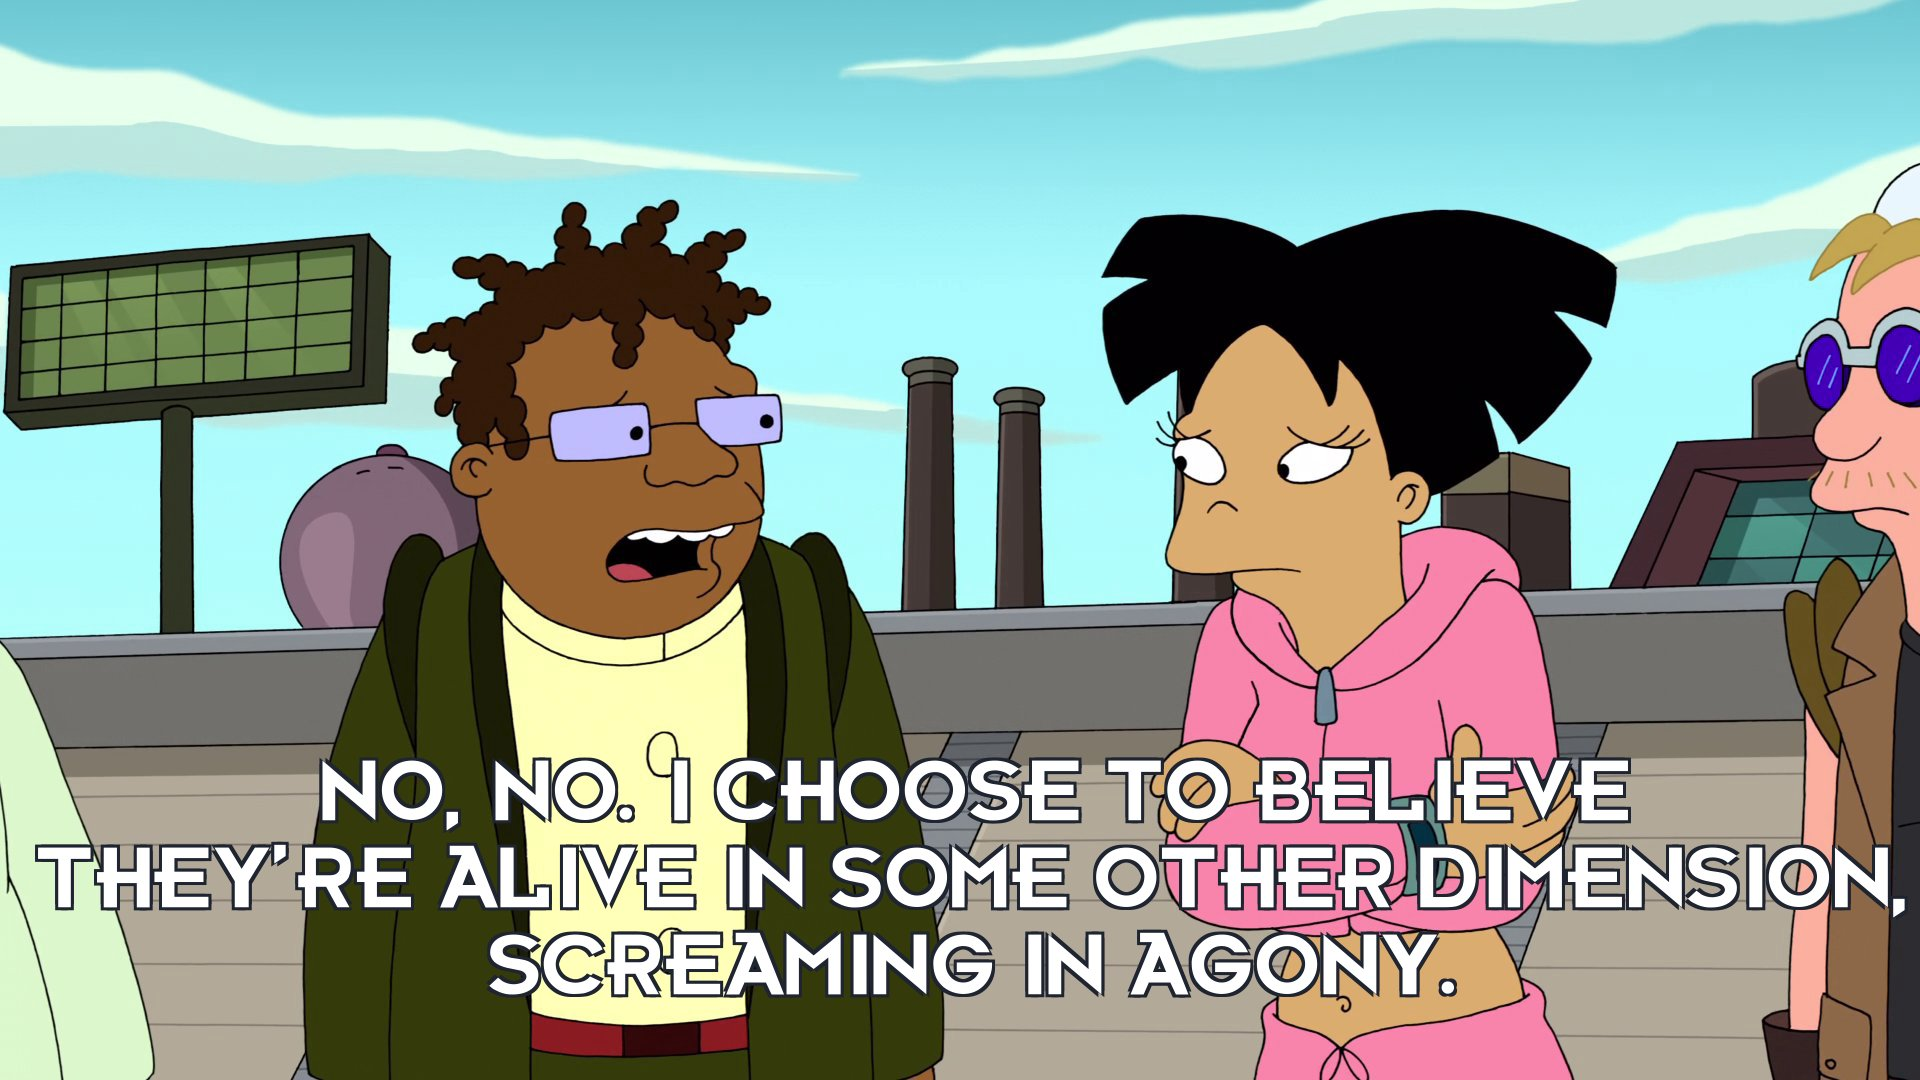 Hermes Conrad: No, no. I choose to believe they're alive in some other dimension, screaming in agony.